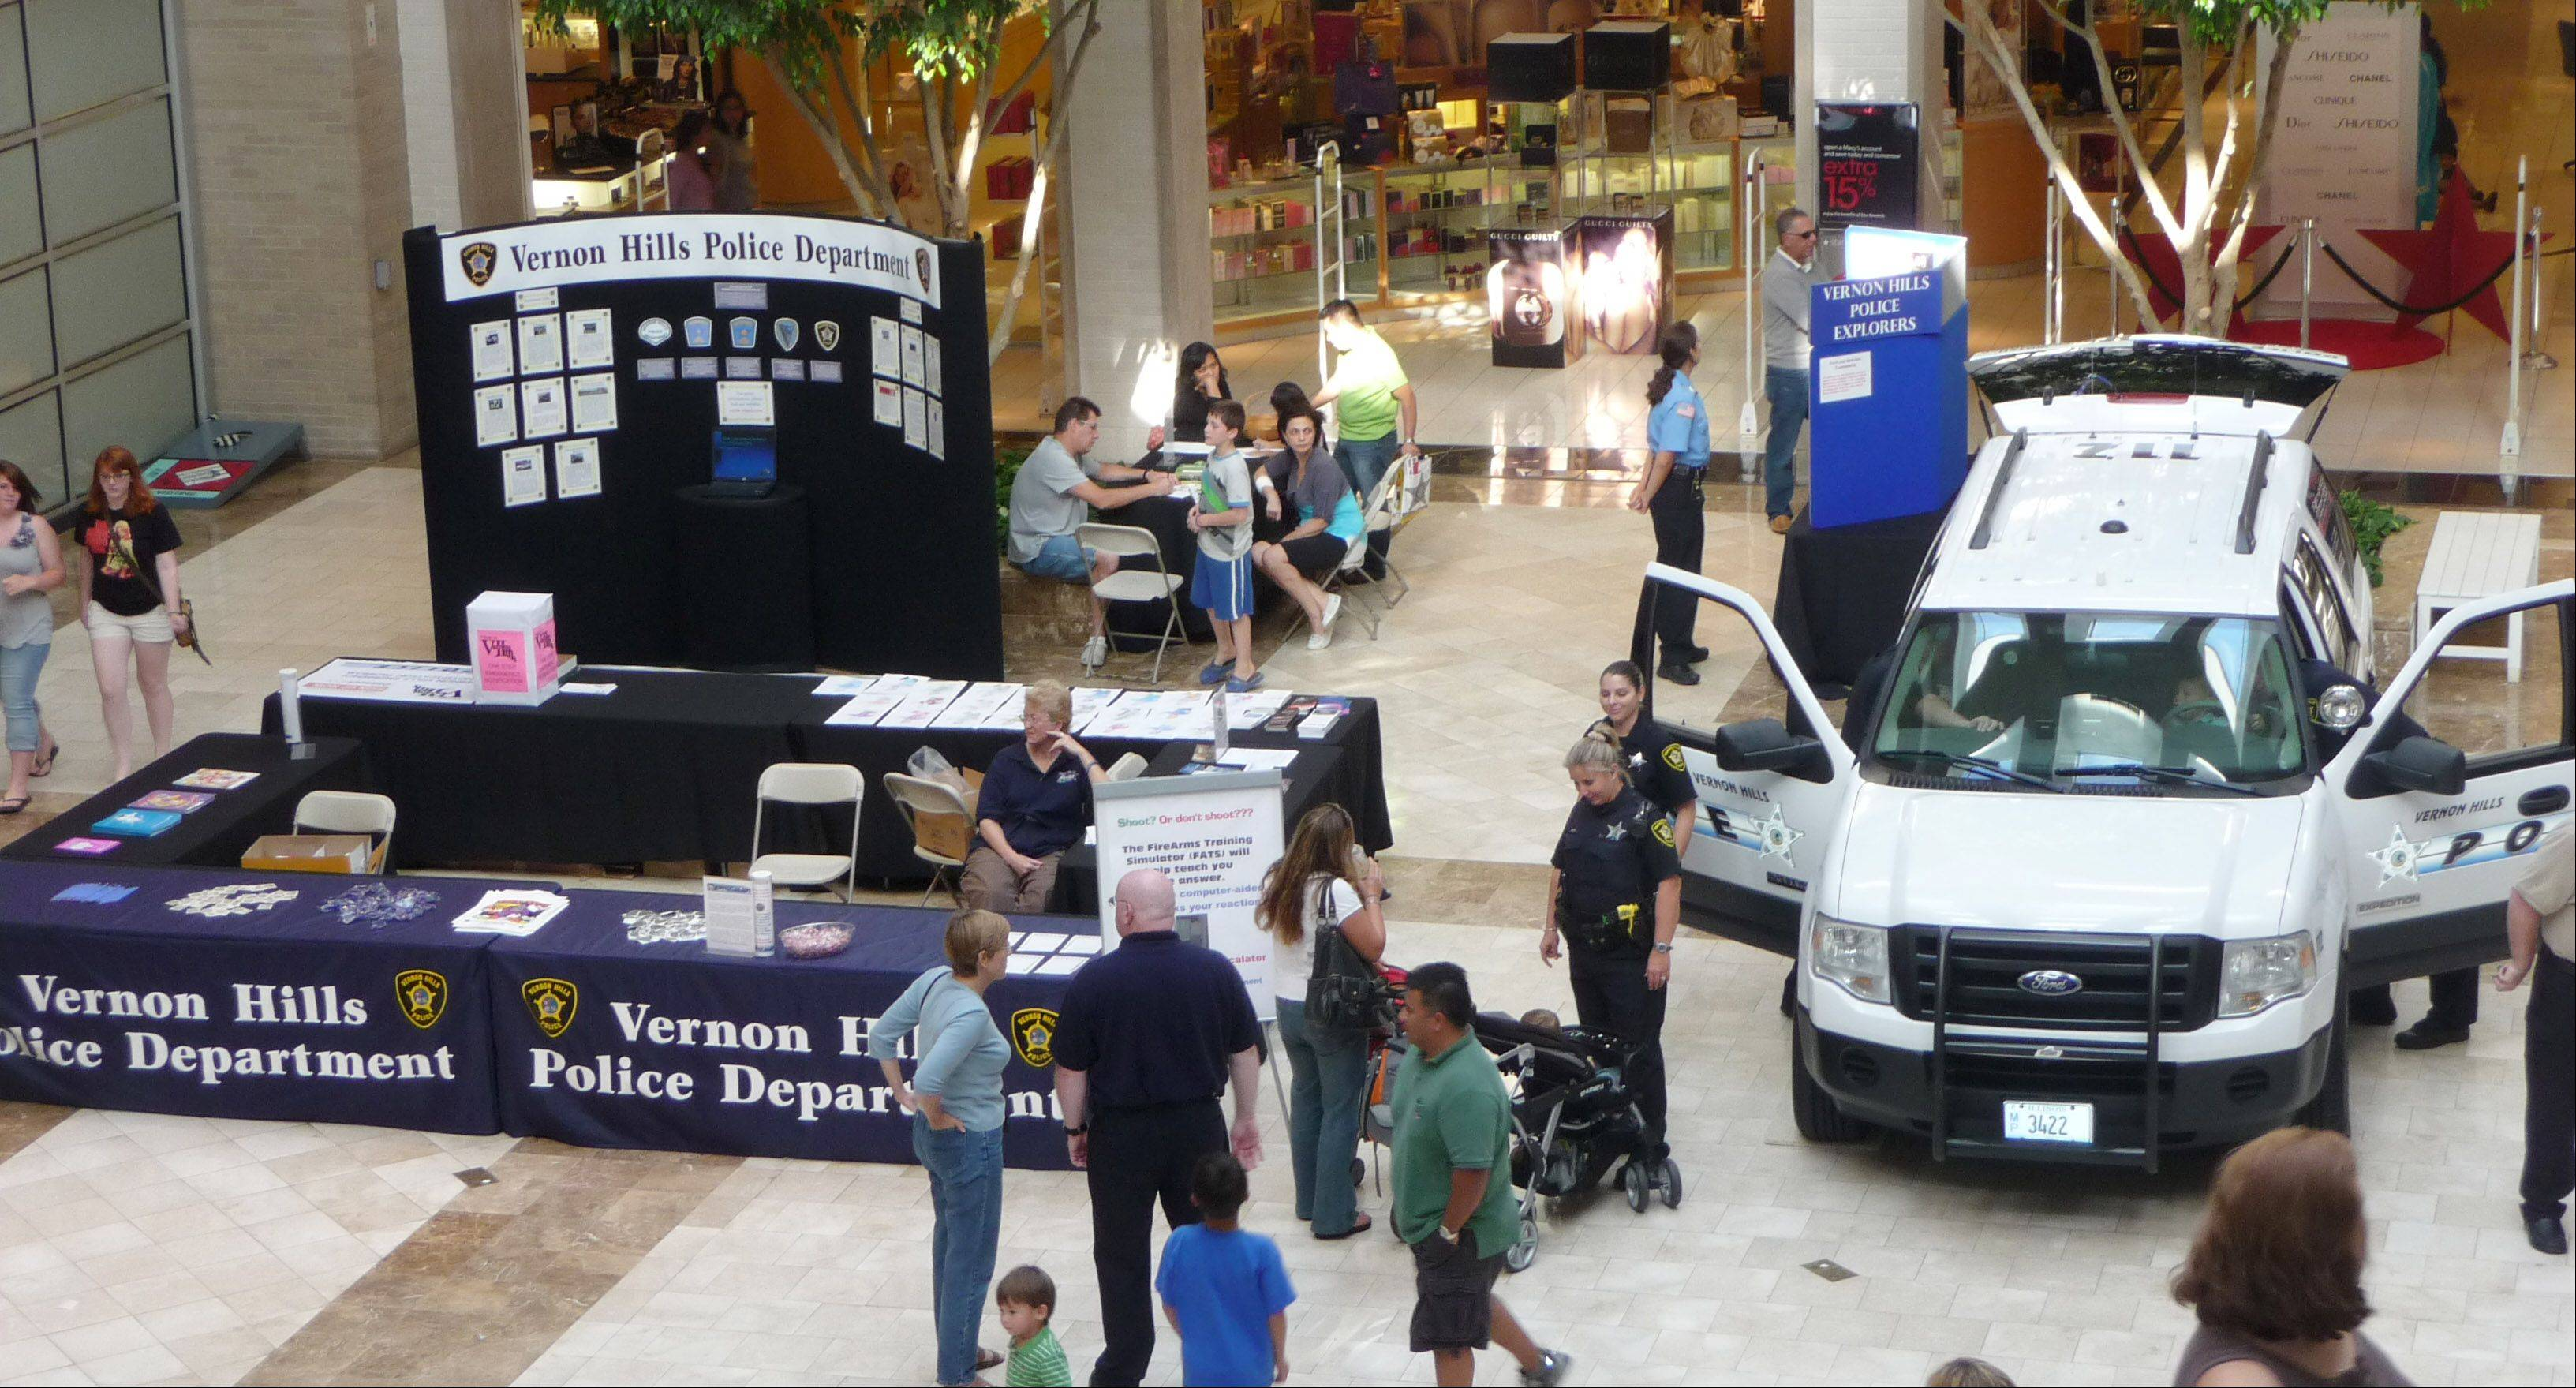 Several law enforcement agencies will participate in the 7th Annual Law Enforcement Exhibition Friday and Saturday, Sept. 10 and 11, at Westfield Hawthorn Mall in Vernon Hills.